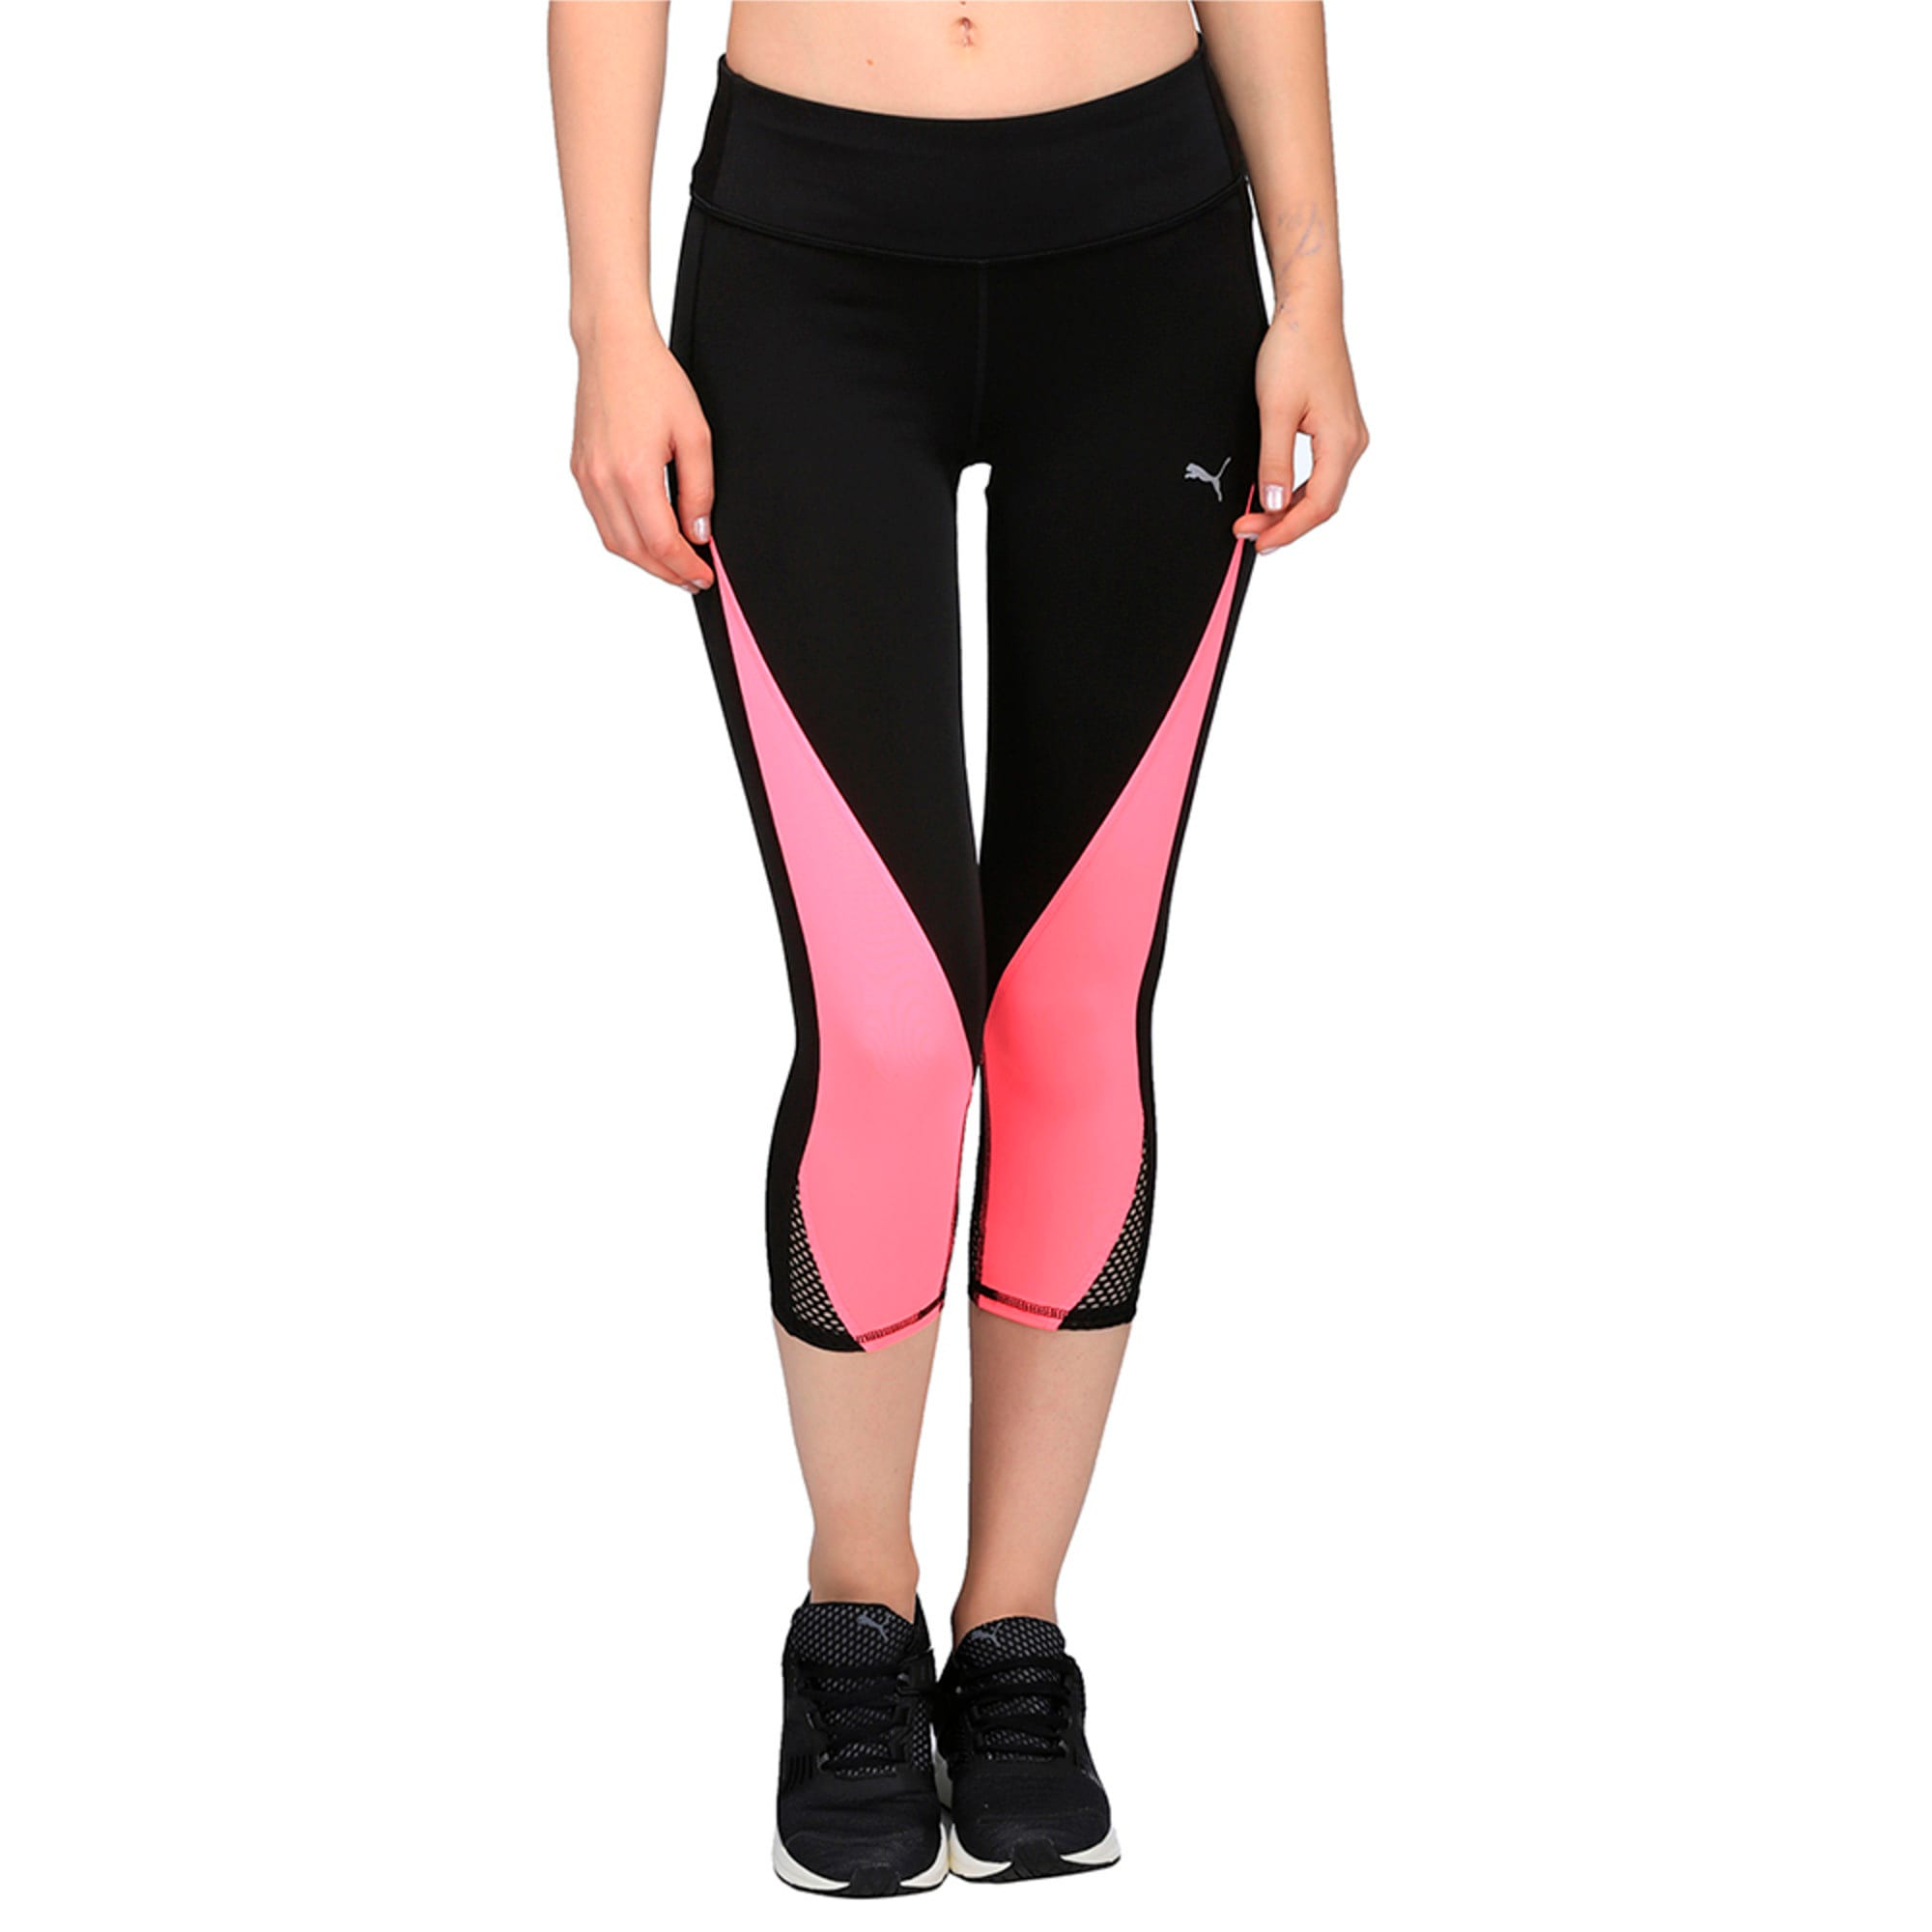 Thumbnail 1 of Active Training Women's Explosive 3/4 Tights, Puma Black-KNOCKOUT PINK, medium-IND